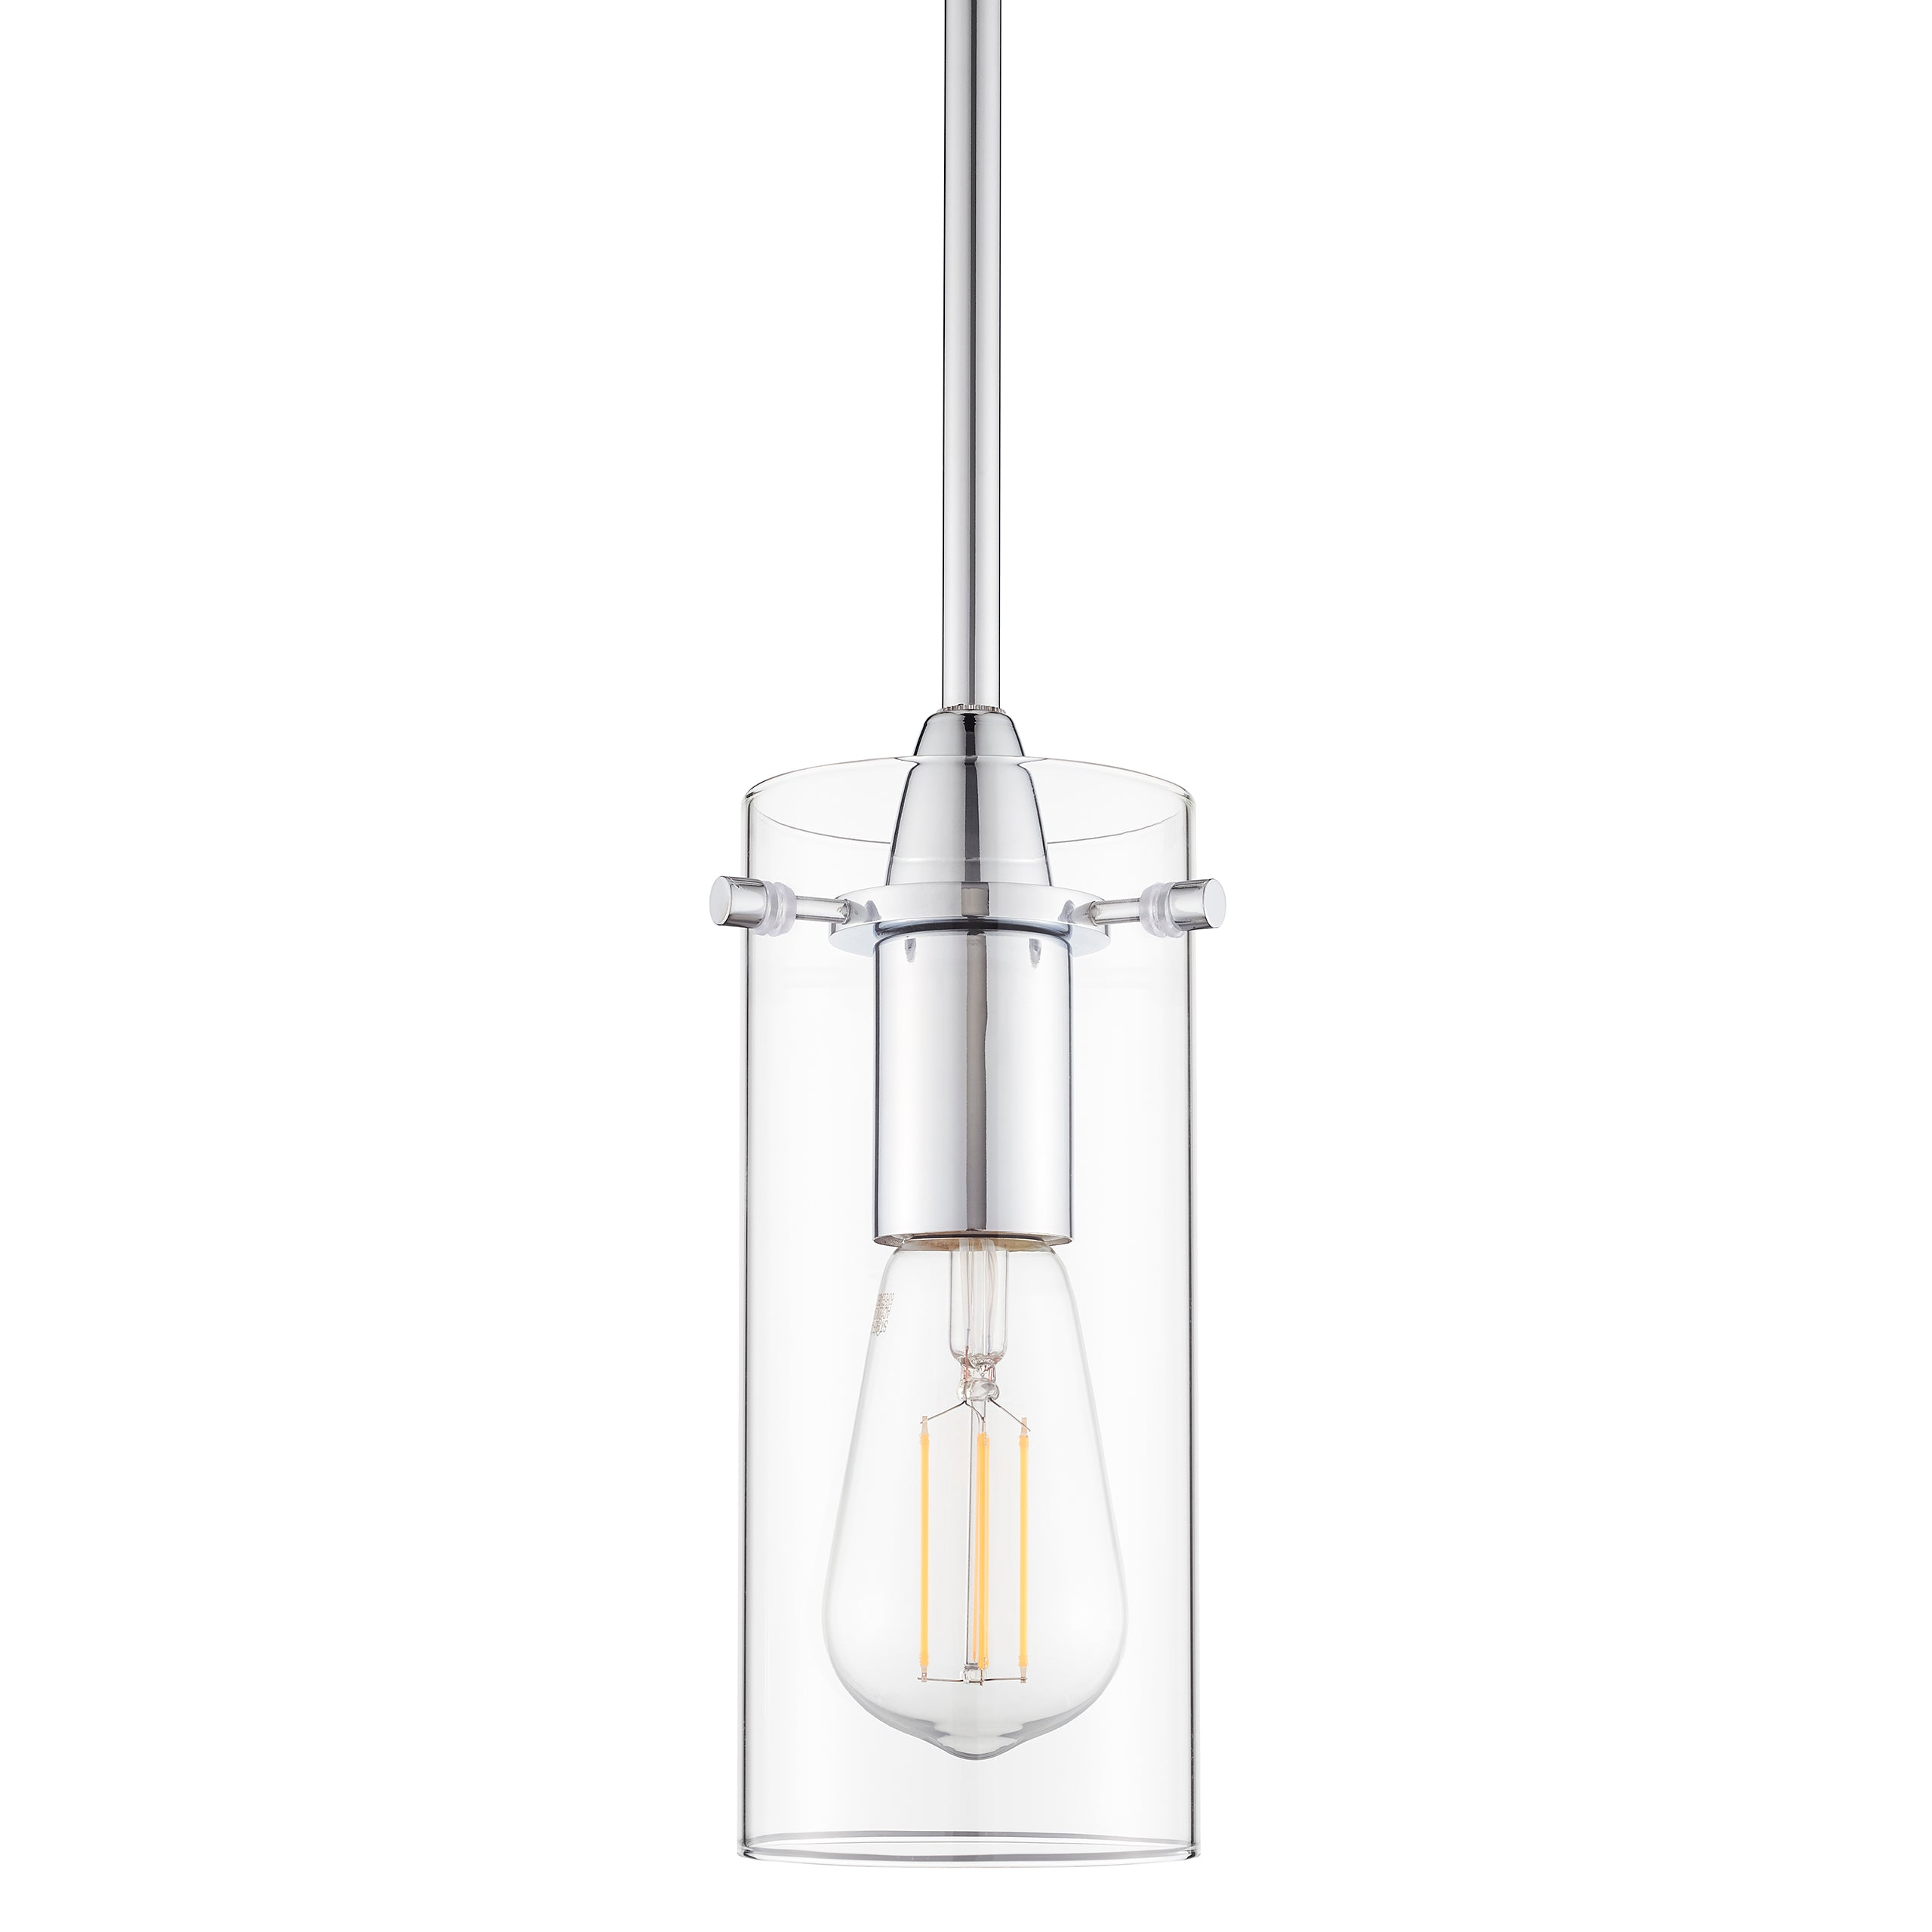 Effimero Glass pendant lighting with no visible wiring, perfect for kitchens and dining rooms